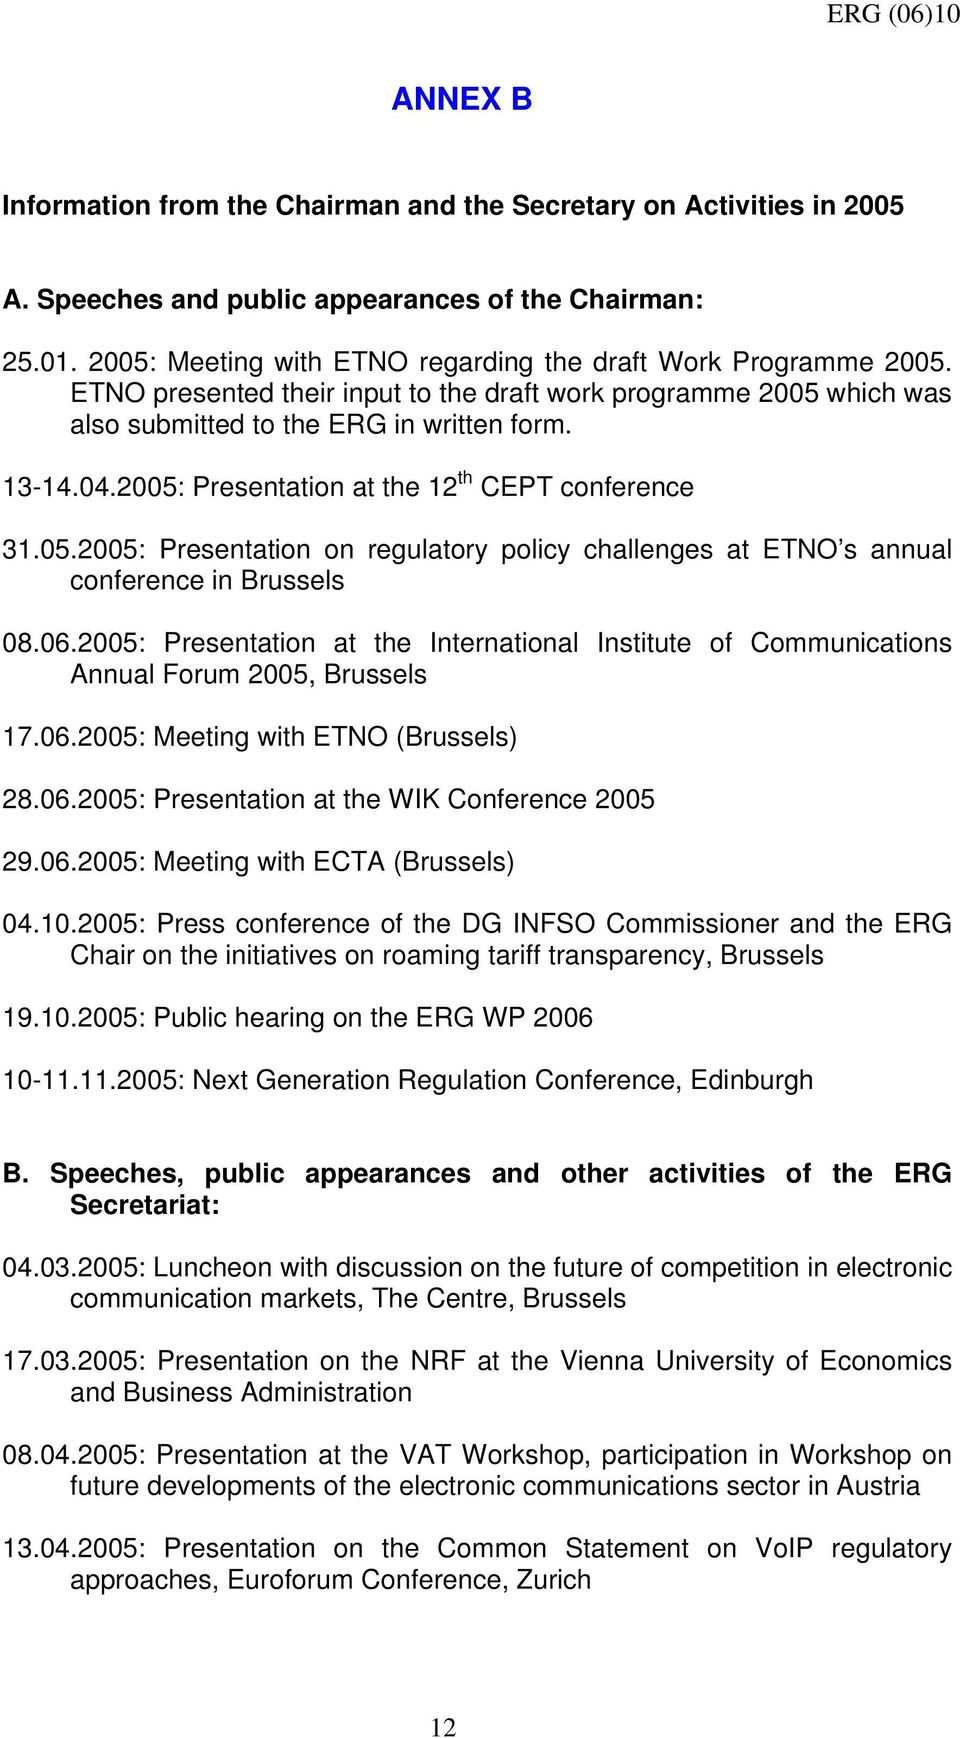 2005: Presentation at the 12 th CEPT conference 31.05.2005: Presentation on regulatory policy challenges at ETNO s annual conference in Brussels 08.06.